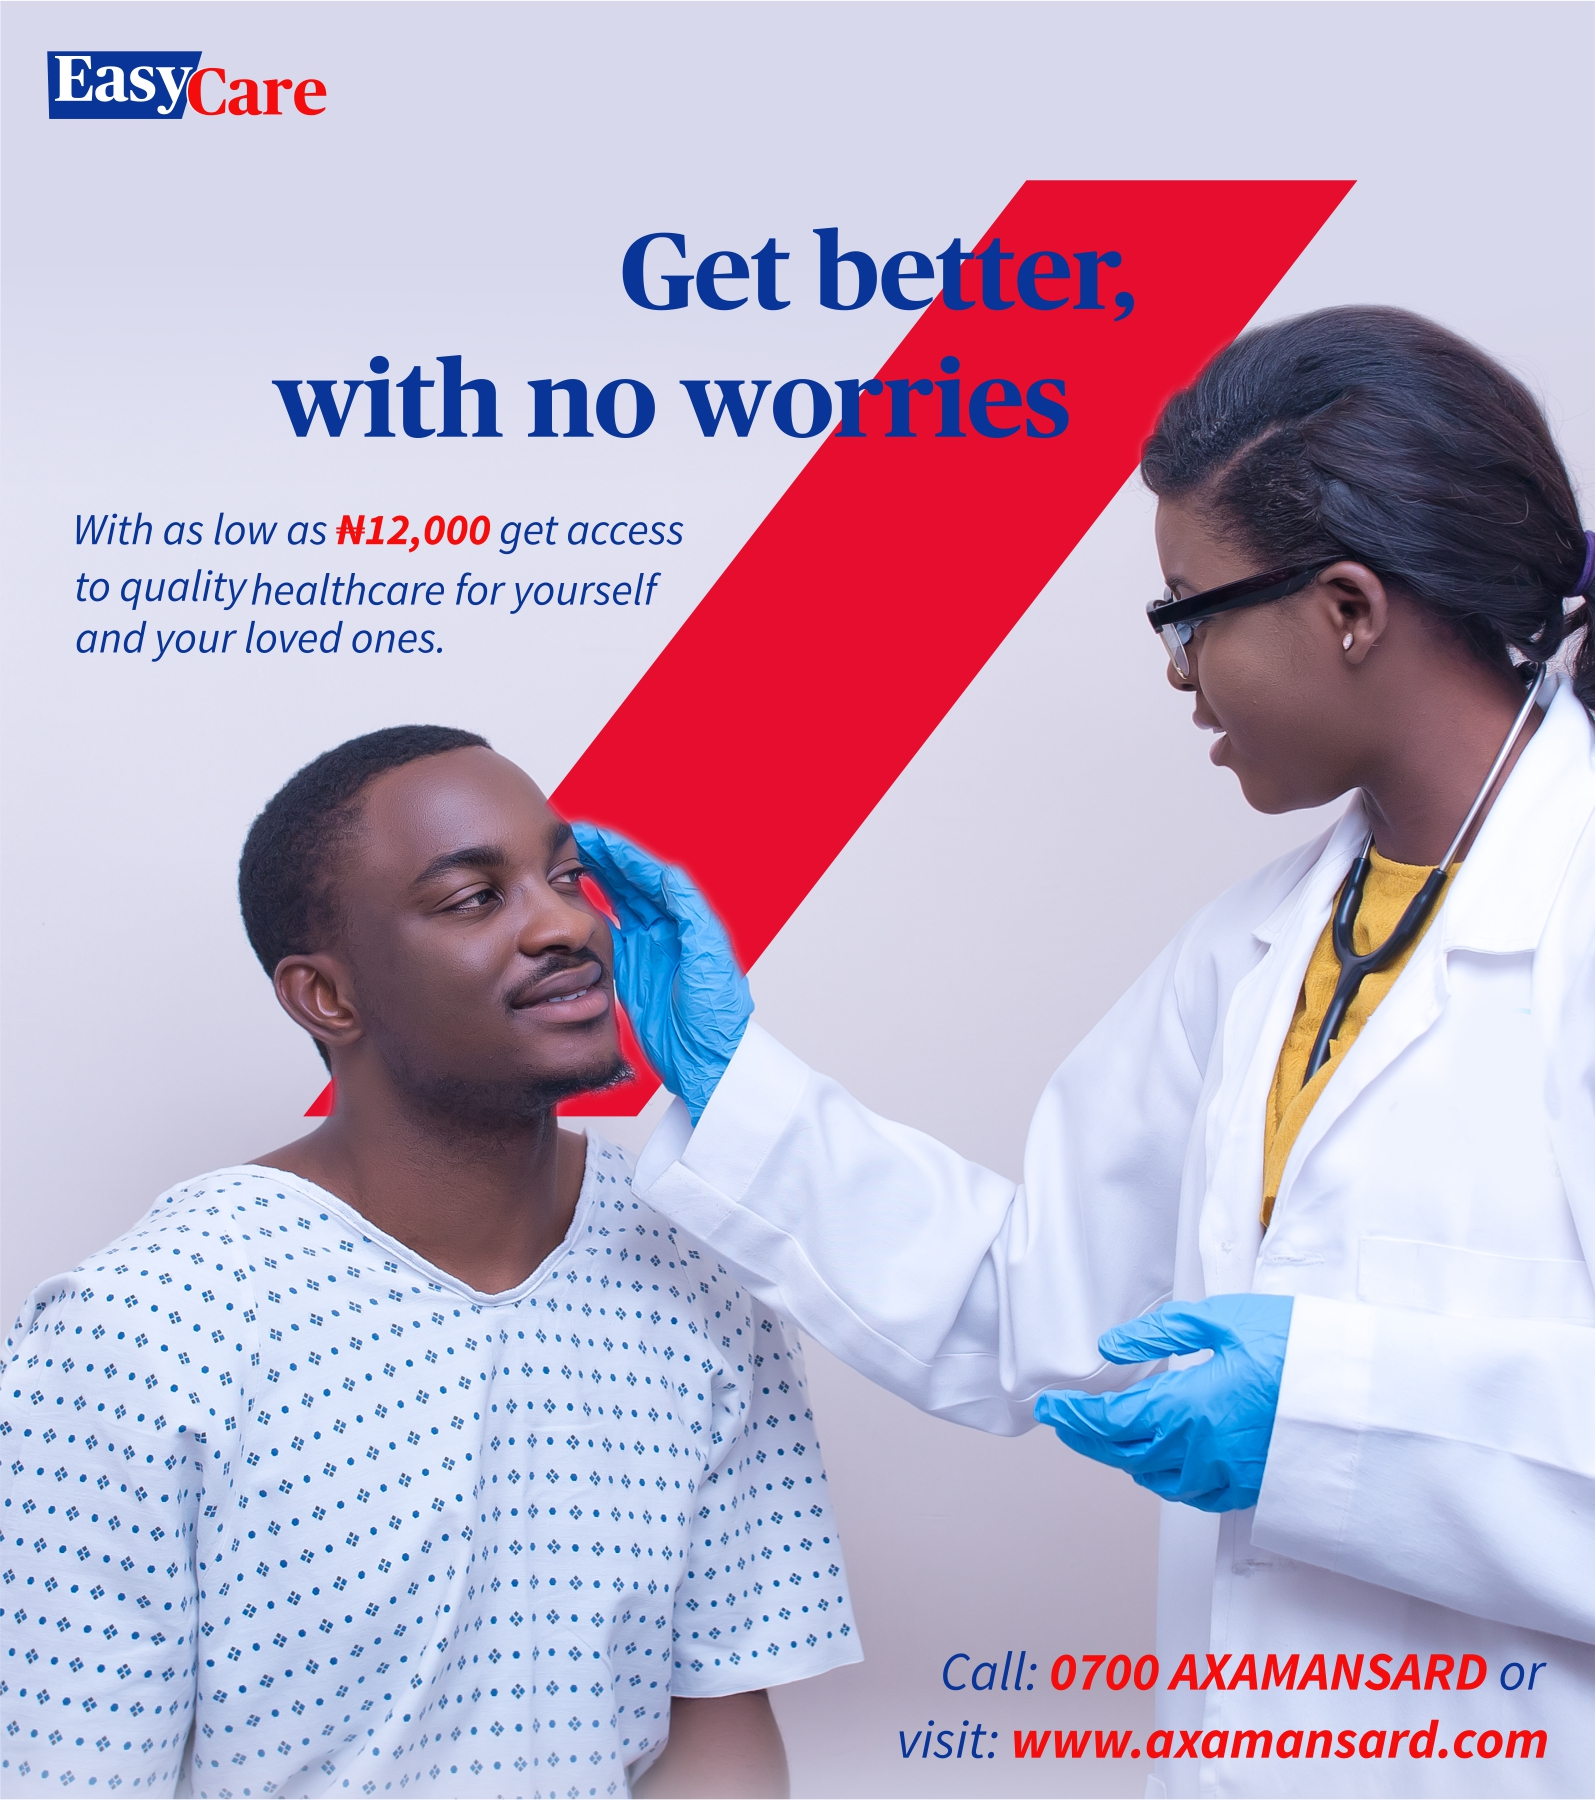 AXA Mansard Health Promotes Affordable Healthcare with the Launch of Easy Care Health Plan - Brand Spur